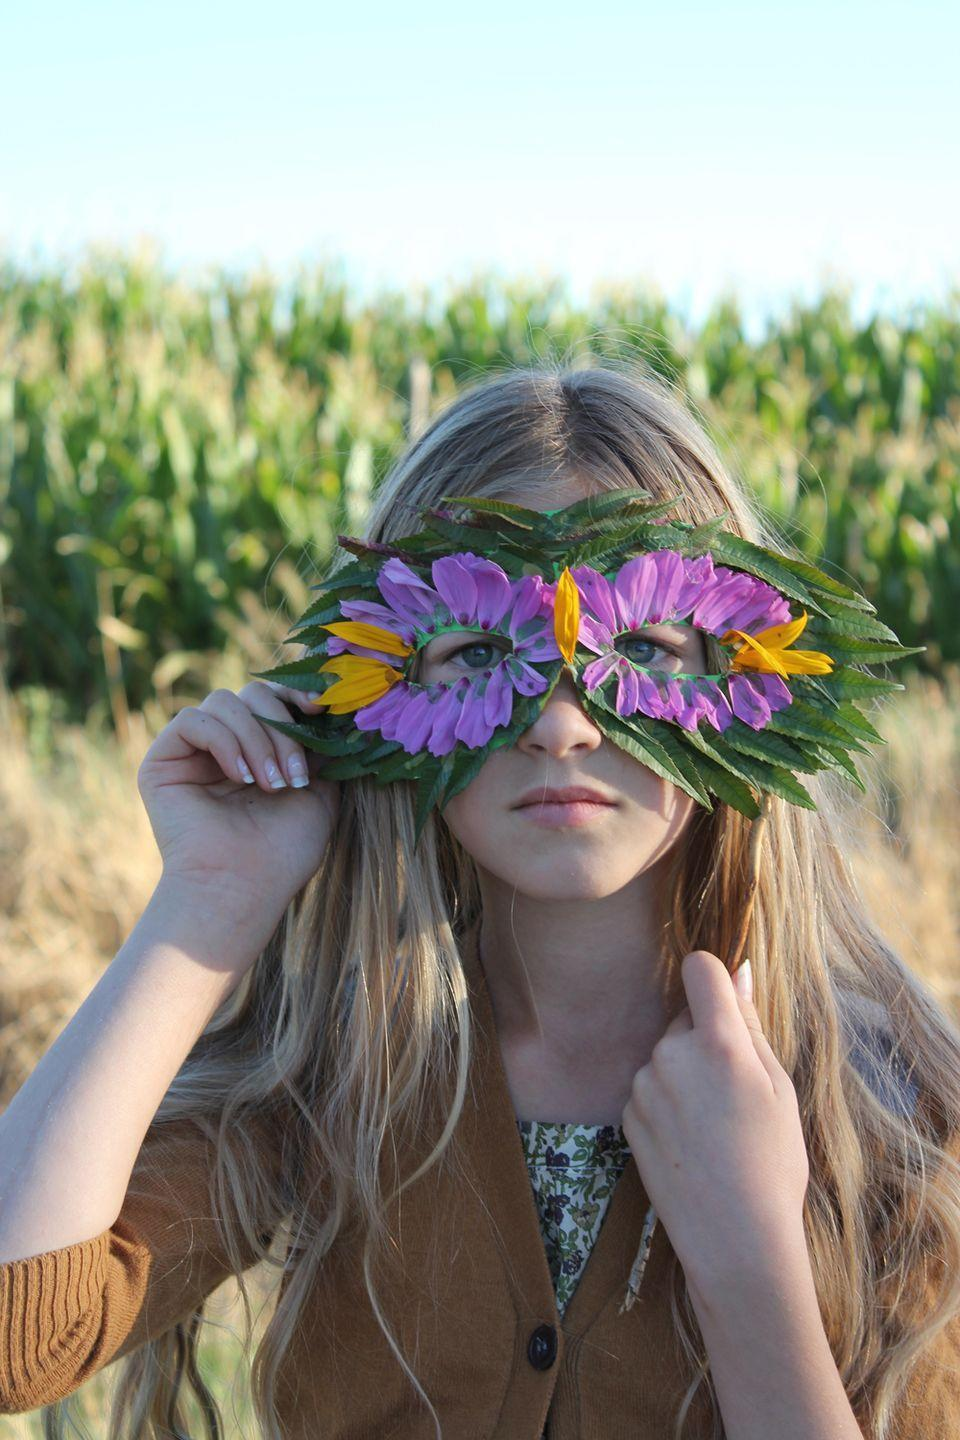 """<p>Your child will certainly feel one with nature once they put together with nature-themed mask, which can easily be made with flowers, leaves, and some glue. </p><p><strong><em>Get the tutorial at <a href=""""http://mermagblog.com/diy-nature-mask-with-leaves-and-flowers/"""" rel=""""nofollow noopener"""" target=""""_blank"""" data-ylk=""""slk:Mer Mag"""" class=""""link rapid-noclick-resp"""">Mer Mag</a>. </em></strong></p>"""